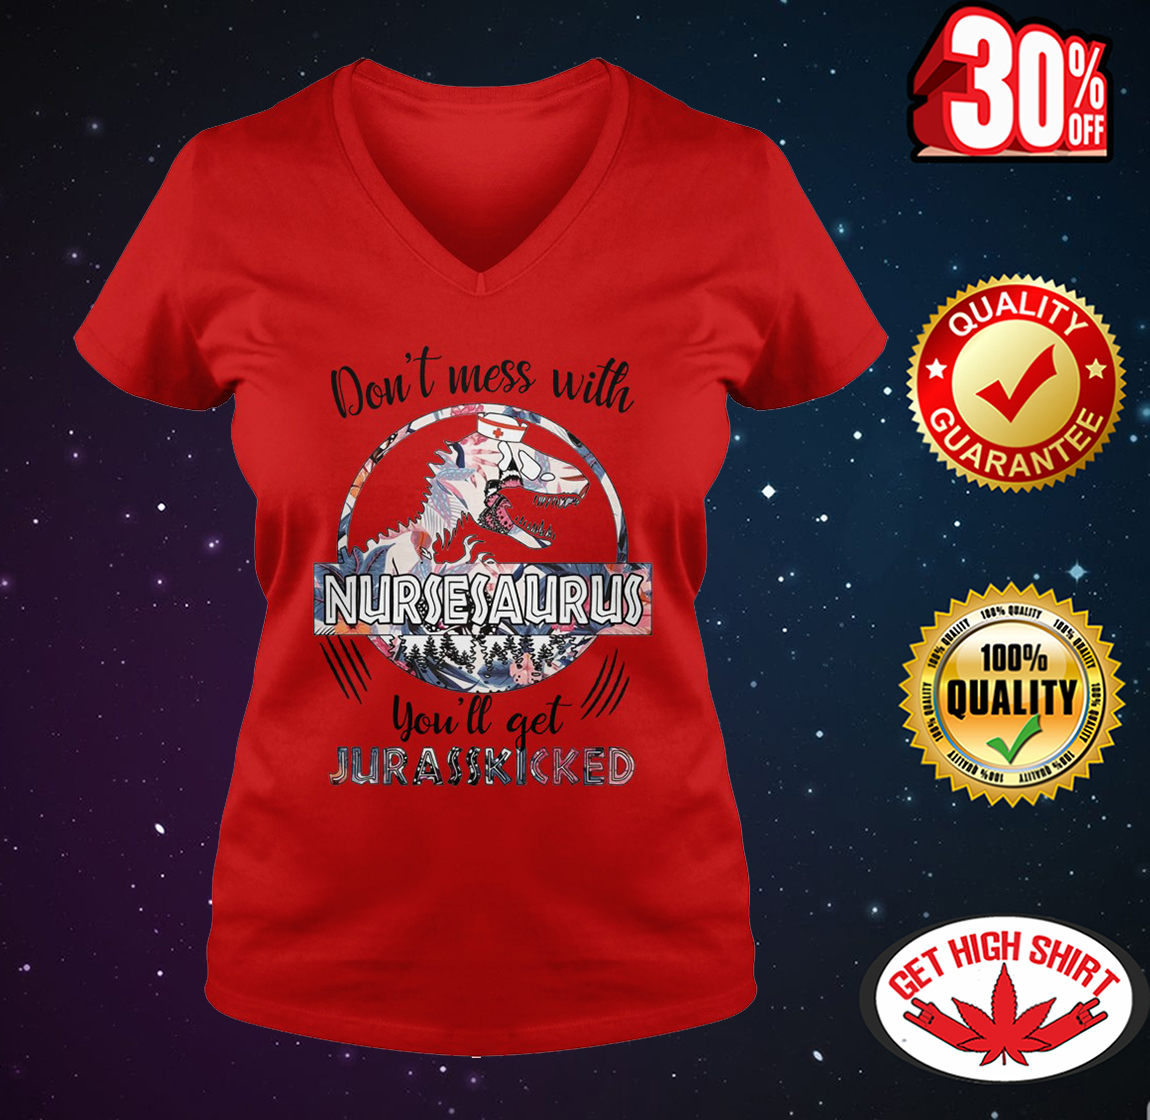 Hot : Don't mess with nursesaurus you'll get jurasskicked shirt